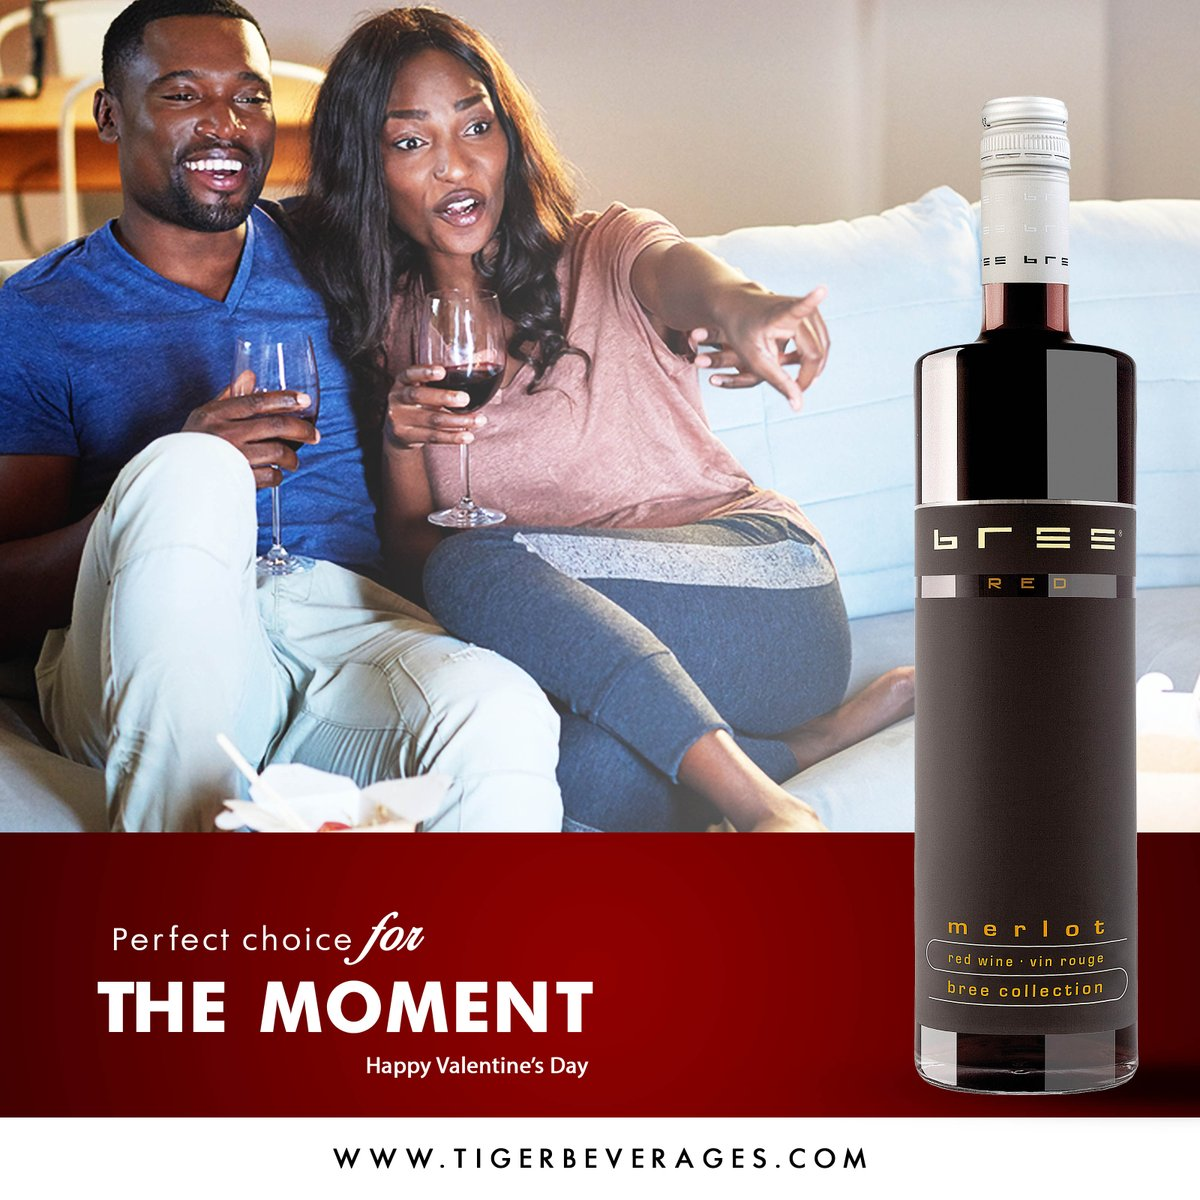 They say friendship is the Wine of life. It's the season of rose and Wine. A bottle of Bree Merlot Red Wine always comes in handy to celebrate with that special someone. Have a blissful Valentine's Day buddies. #ValentinesDay2020 #Beverages #Drink #TigerBeveragespic.twitter.com/WE1Bn1paPt